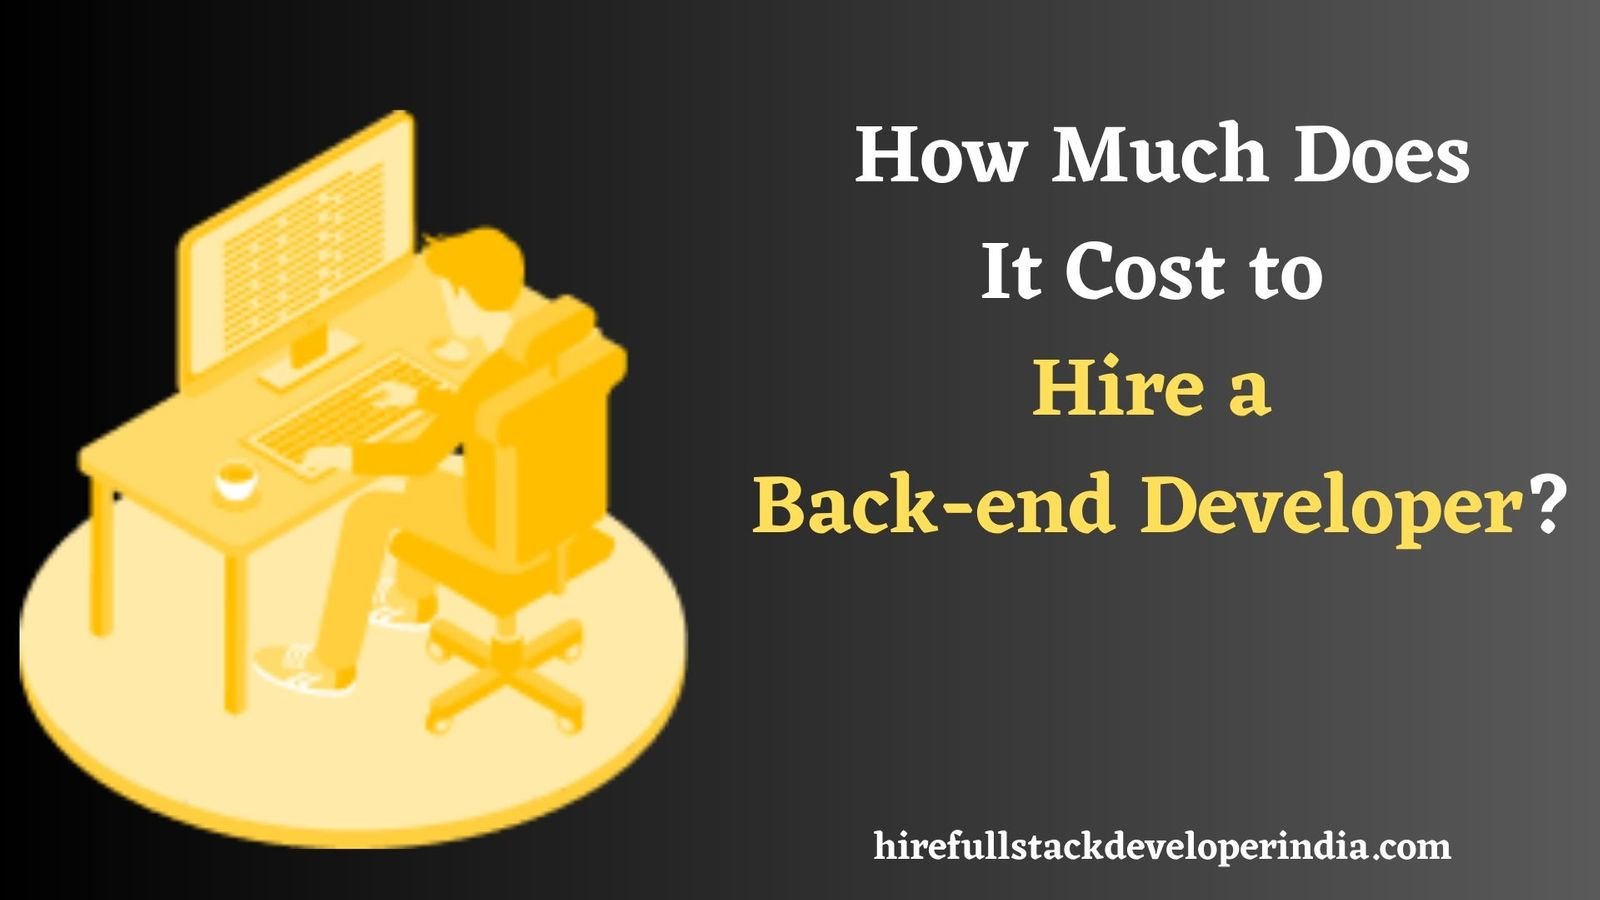 How Much Does It Cost to Hire a Back-end Developer in 2020?